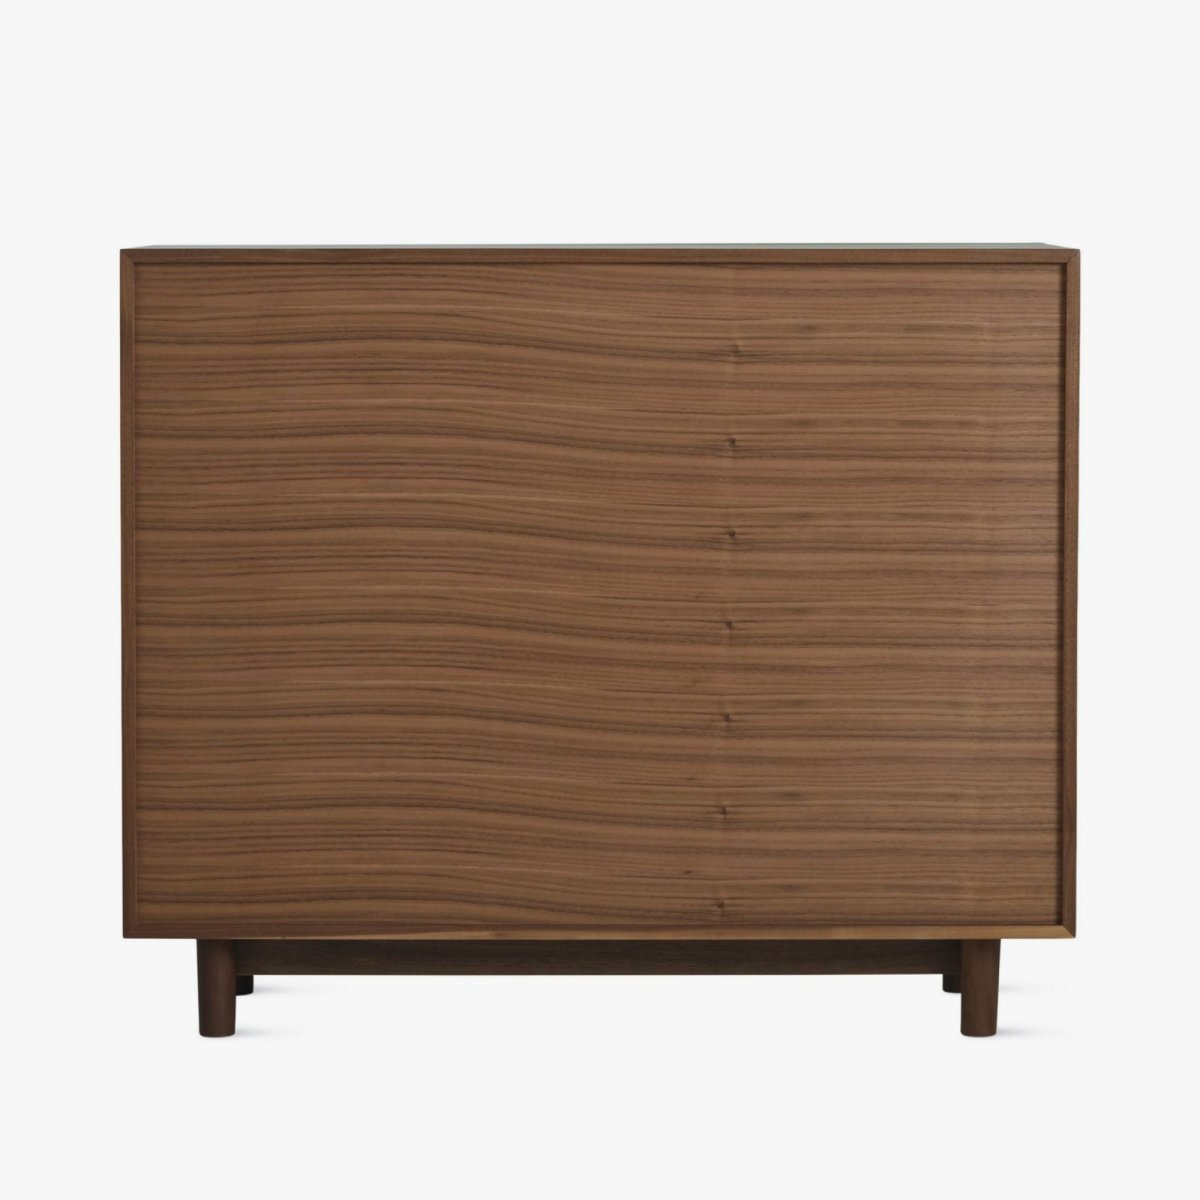 Edel Console, walnut, back view.